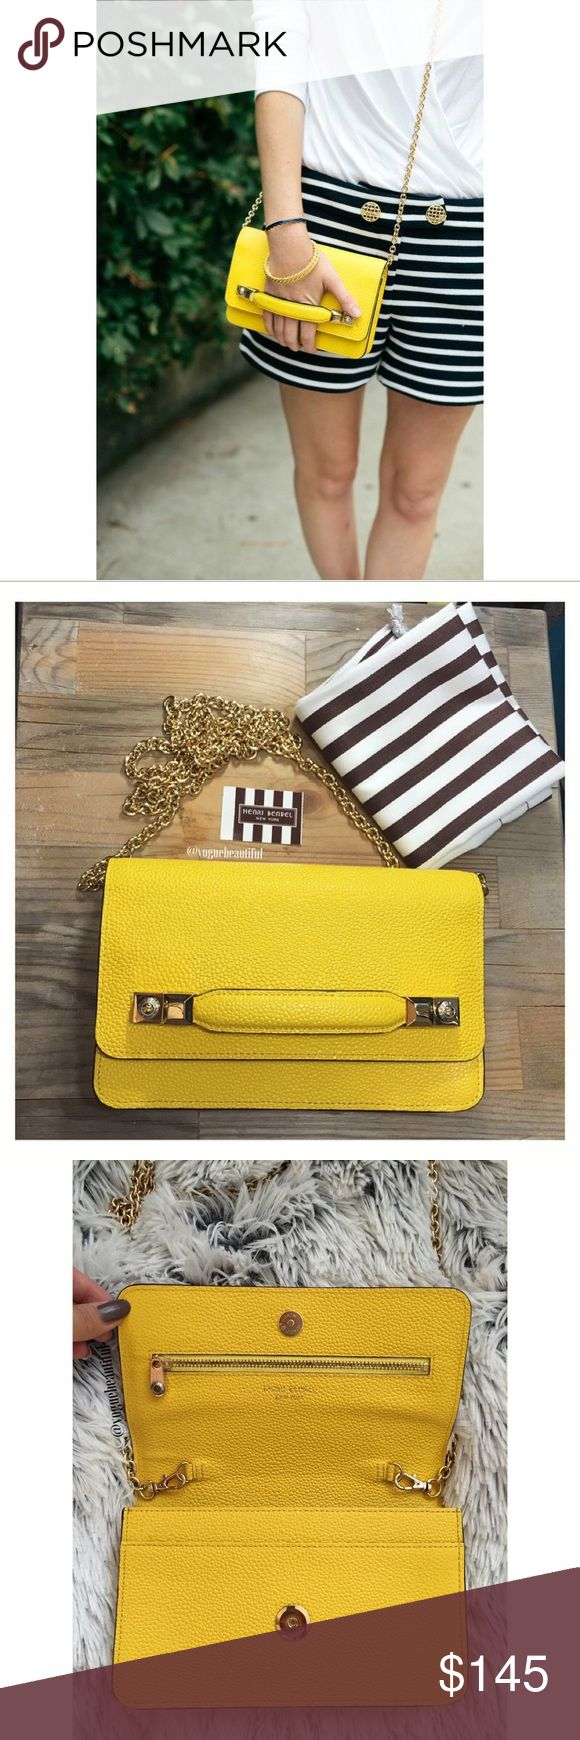 NWT Henri Bendel Crossbody Wallet on a string Brand new with tag { although no longer attached } Henri Bendel wallet on a string crossbody in yellow • in perfect new condition, comes with original tag & dustbag • retails for $198 • color may vary slightly from photos • 6 card slots, one cash pocket on inside • fits iPhone 6 & more • 7.75 across x 5 inch height • strap is 22-23 inches • NO TRADES‼️ • cover shot credit: mackenziehoran.com • henri bendel Bags Crossbody Bags